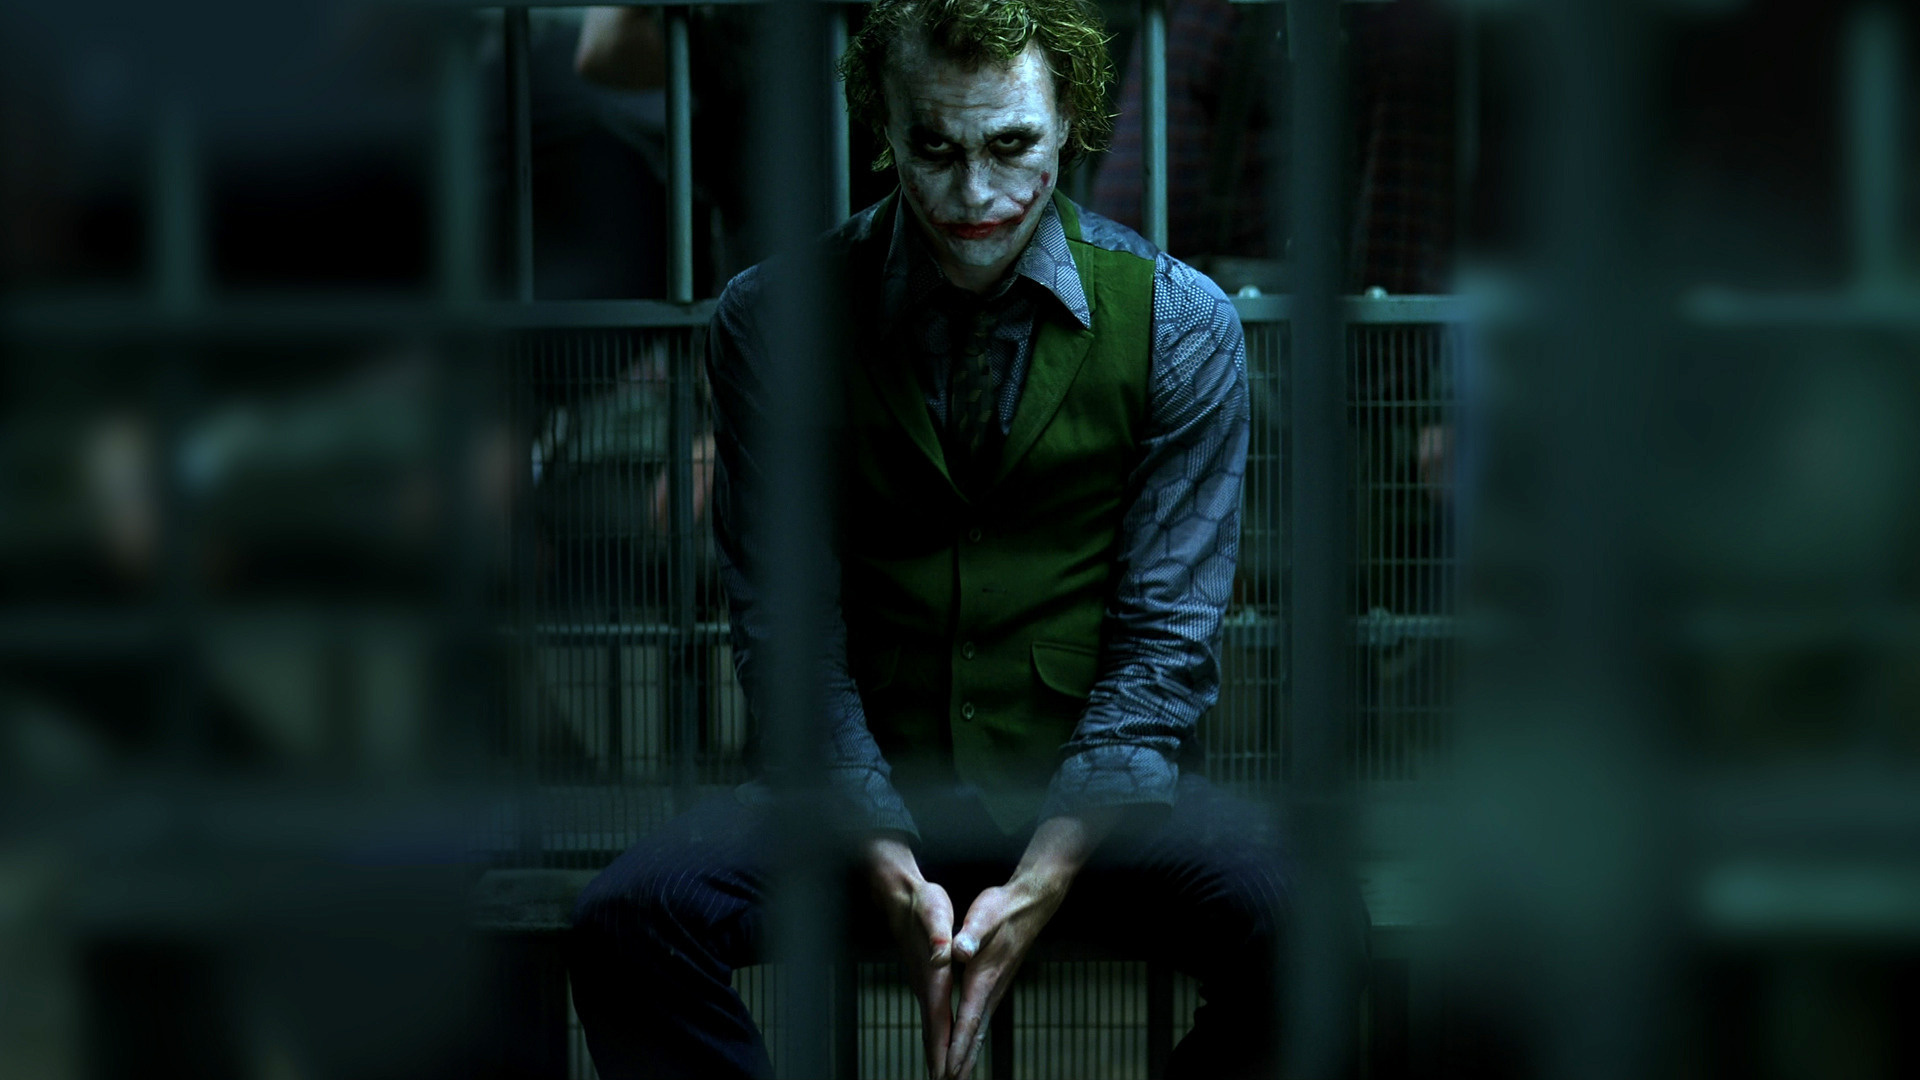 8589130461941 batman the dark knight joker wallpaper hd Hacerse la 1920x1080